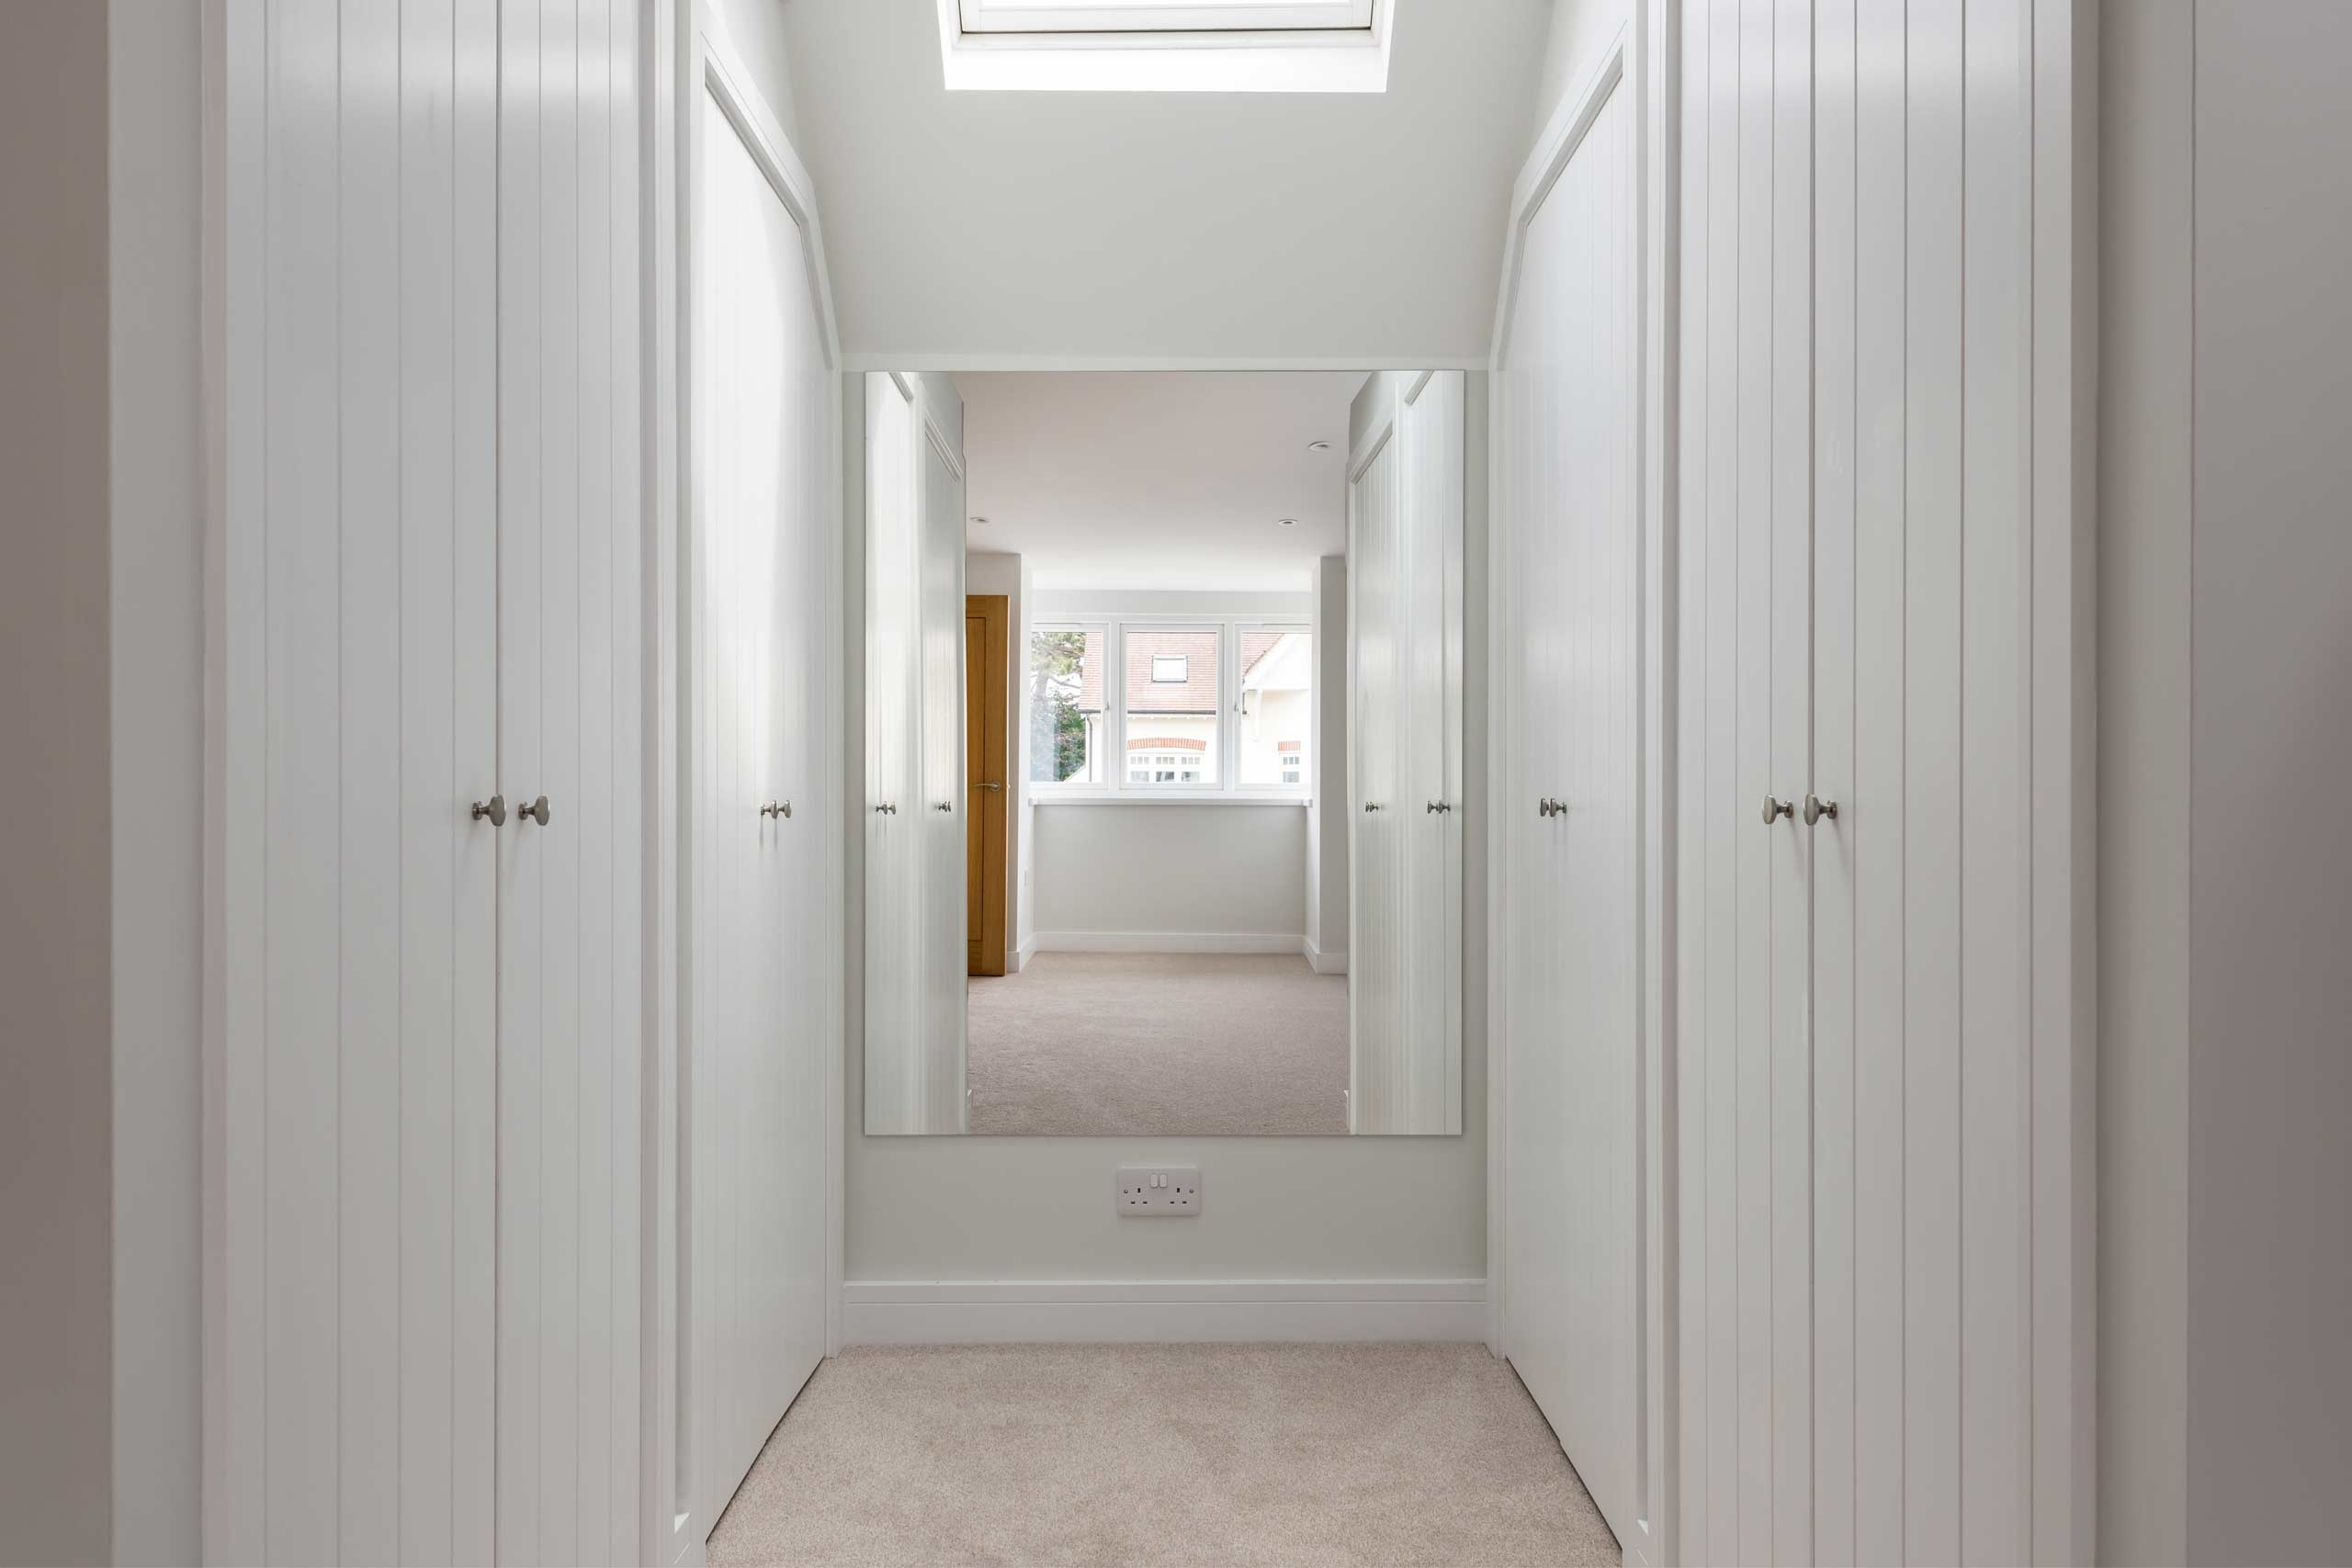 Newly installed cupboards, an example of bespoke carpentry and joinery in Oxfordshire